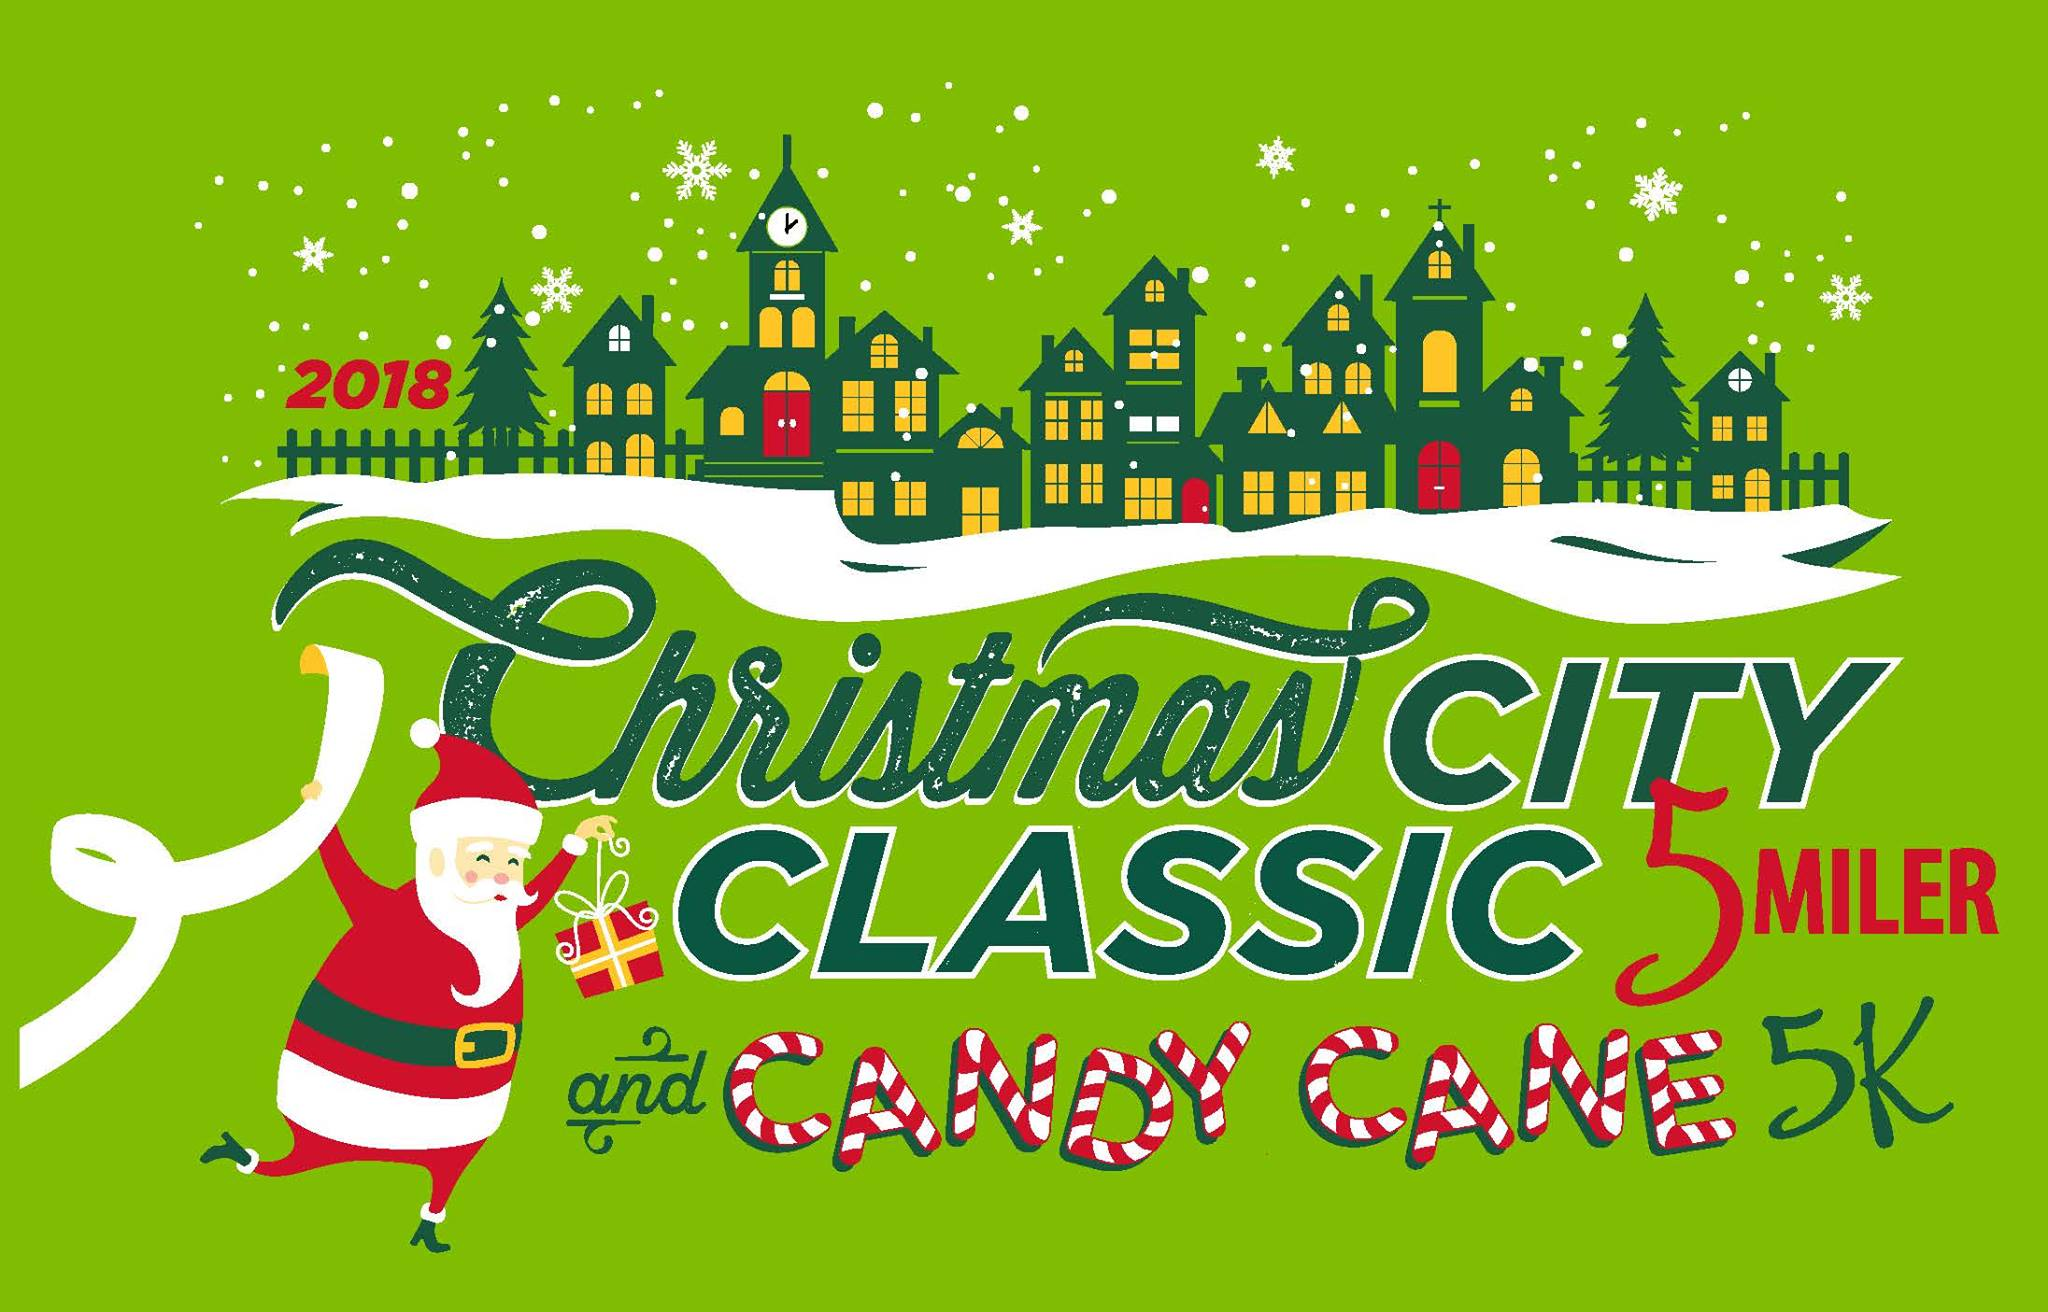 2018 Christmas City Classic 5-miler and Candy Cane 5k